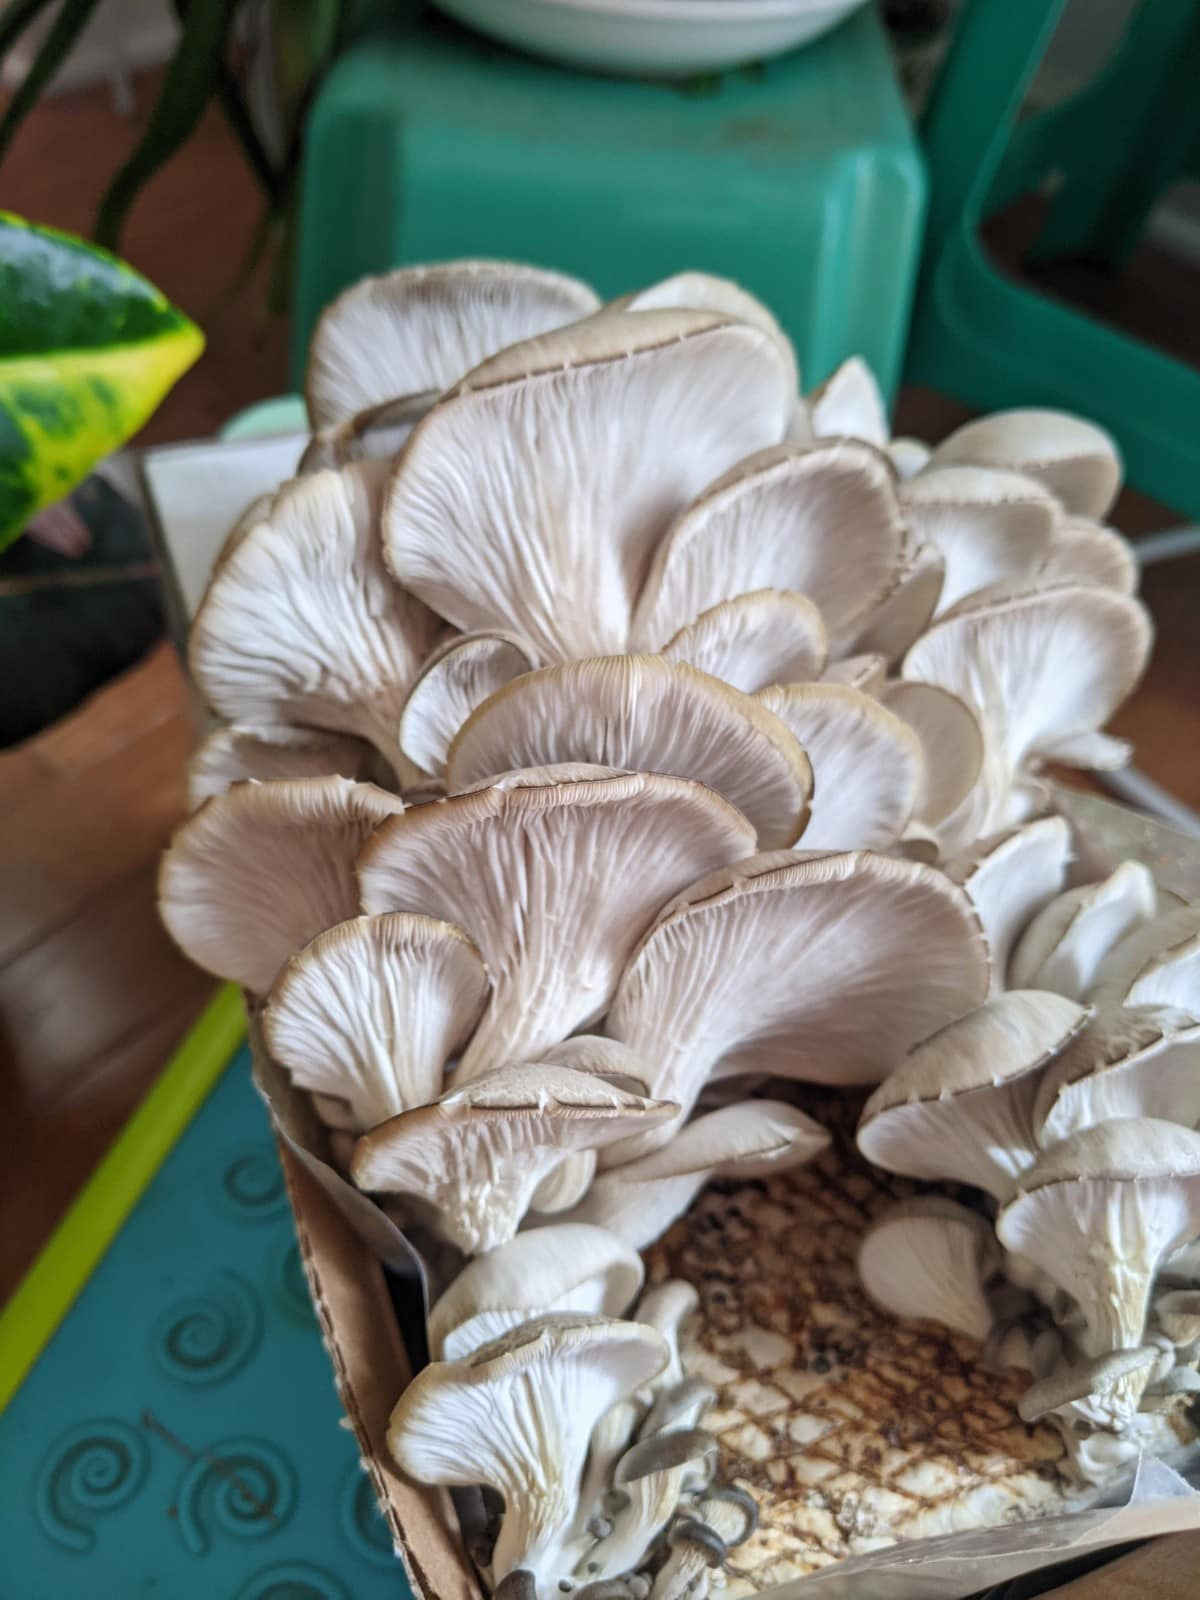 Day 7 of the Back to the Roots oyster mushroom kit